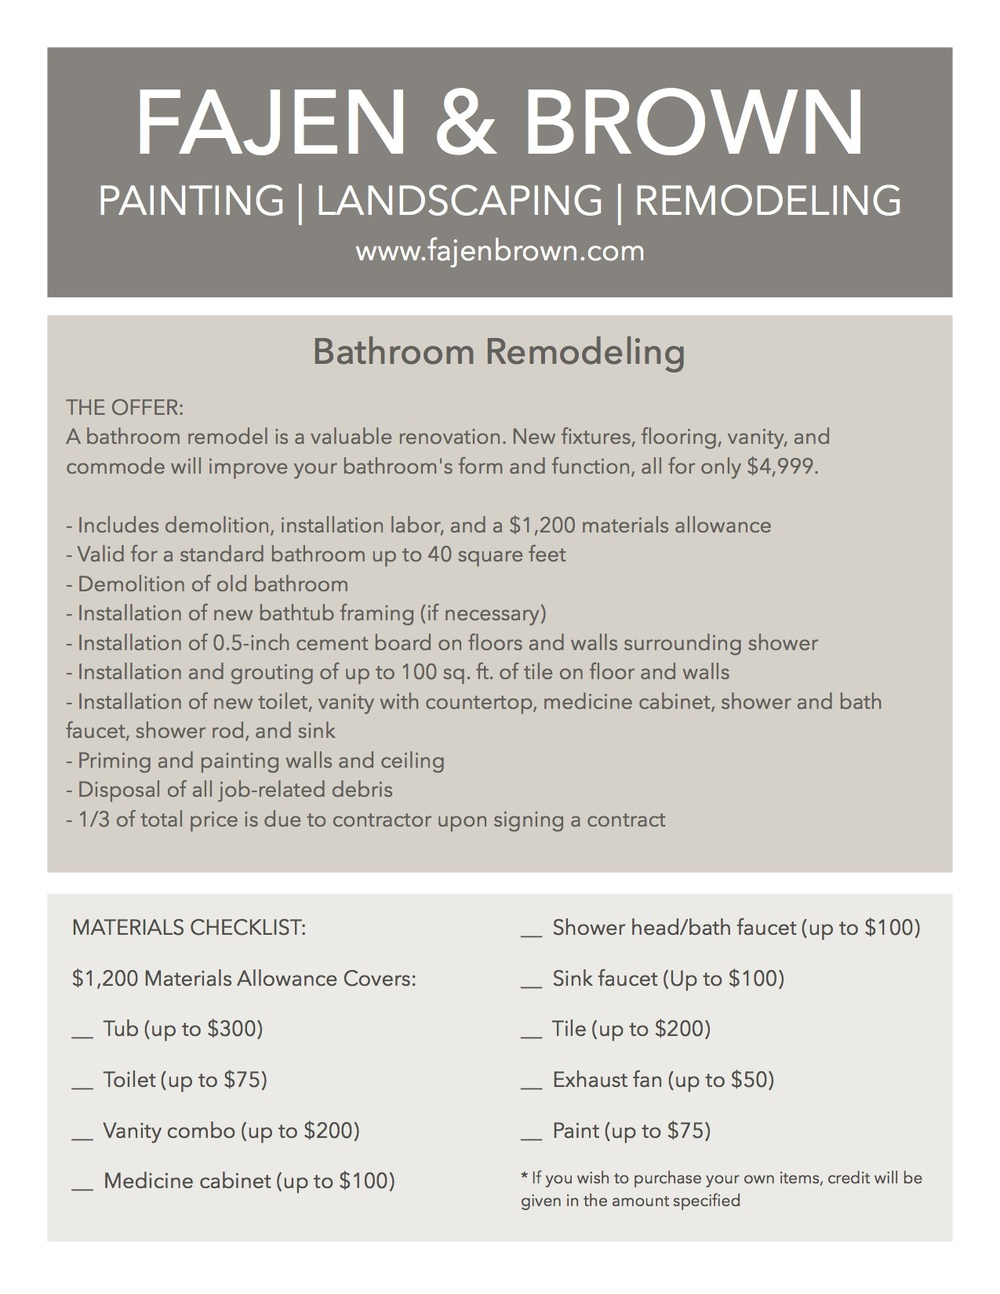 Bathroom Remodeling Form.jpg